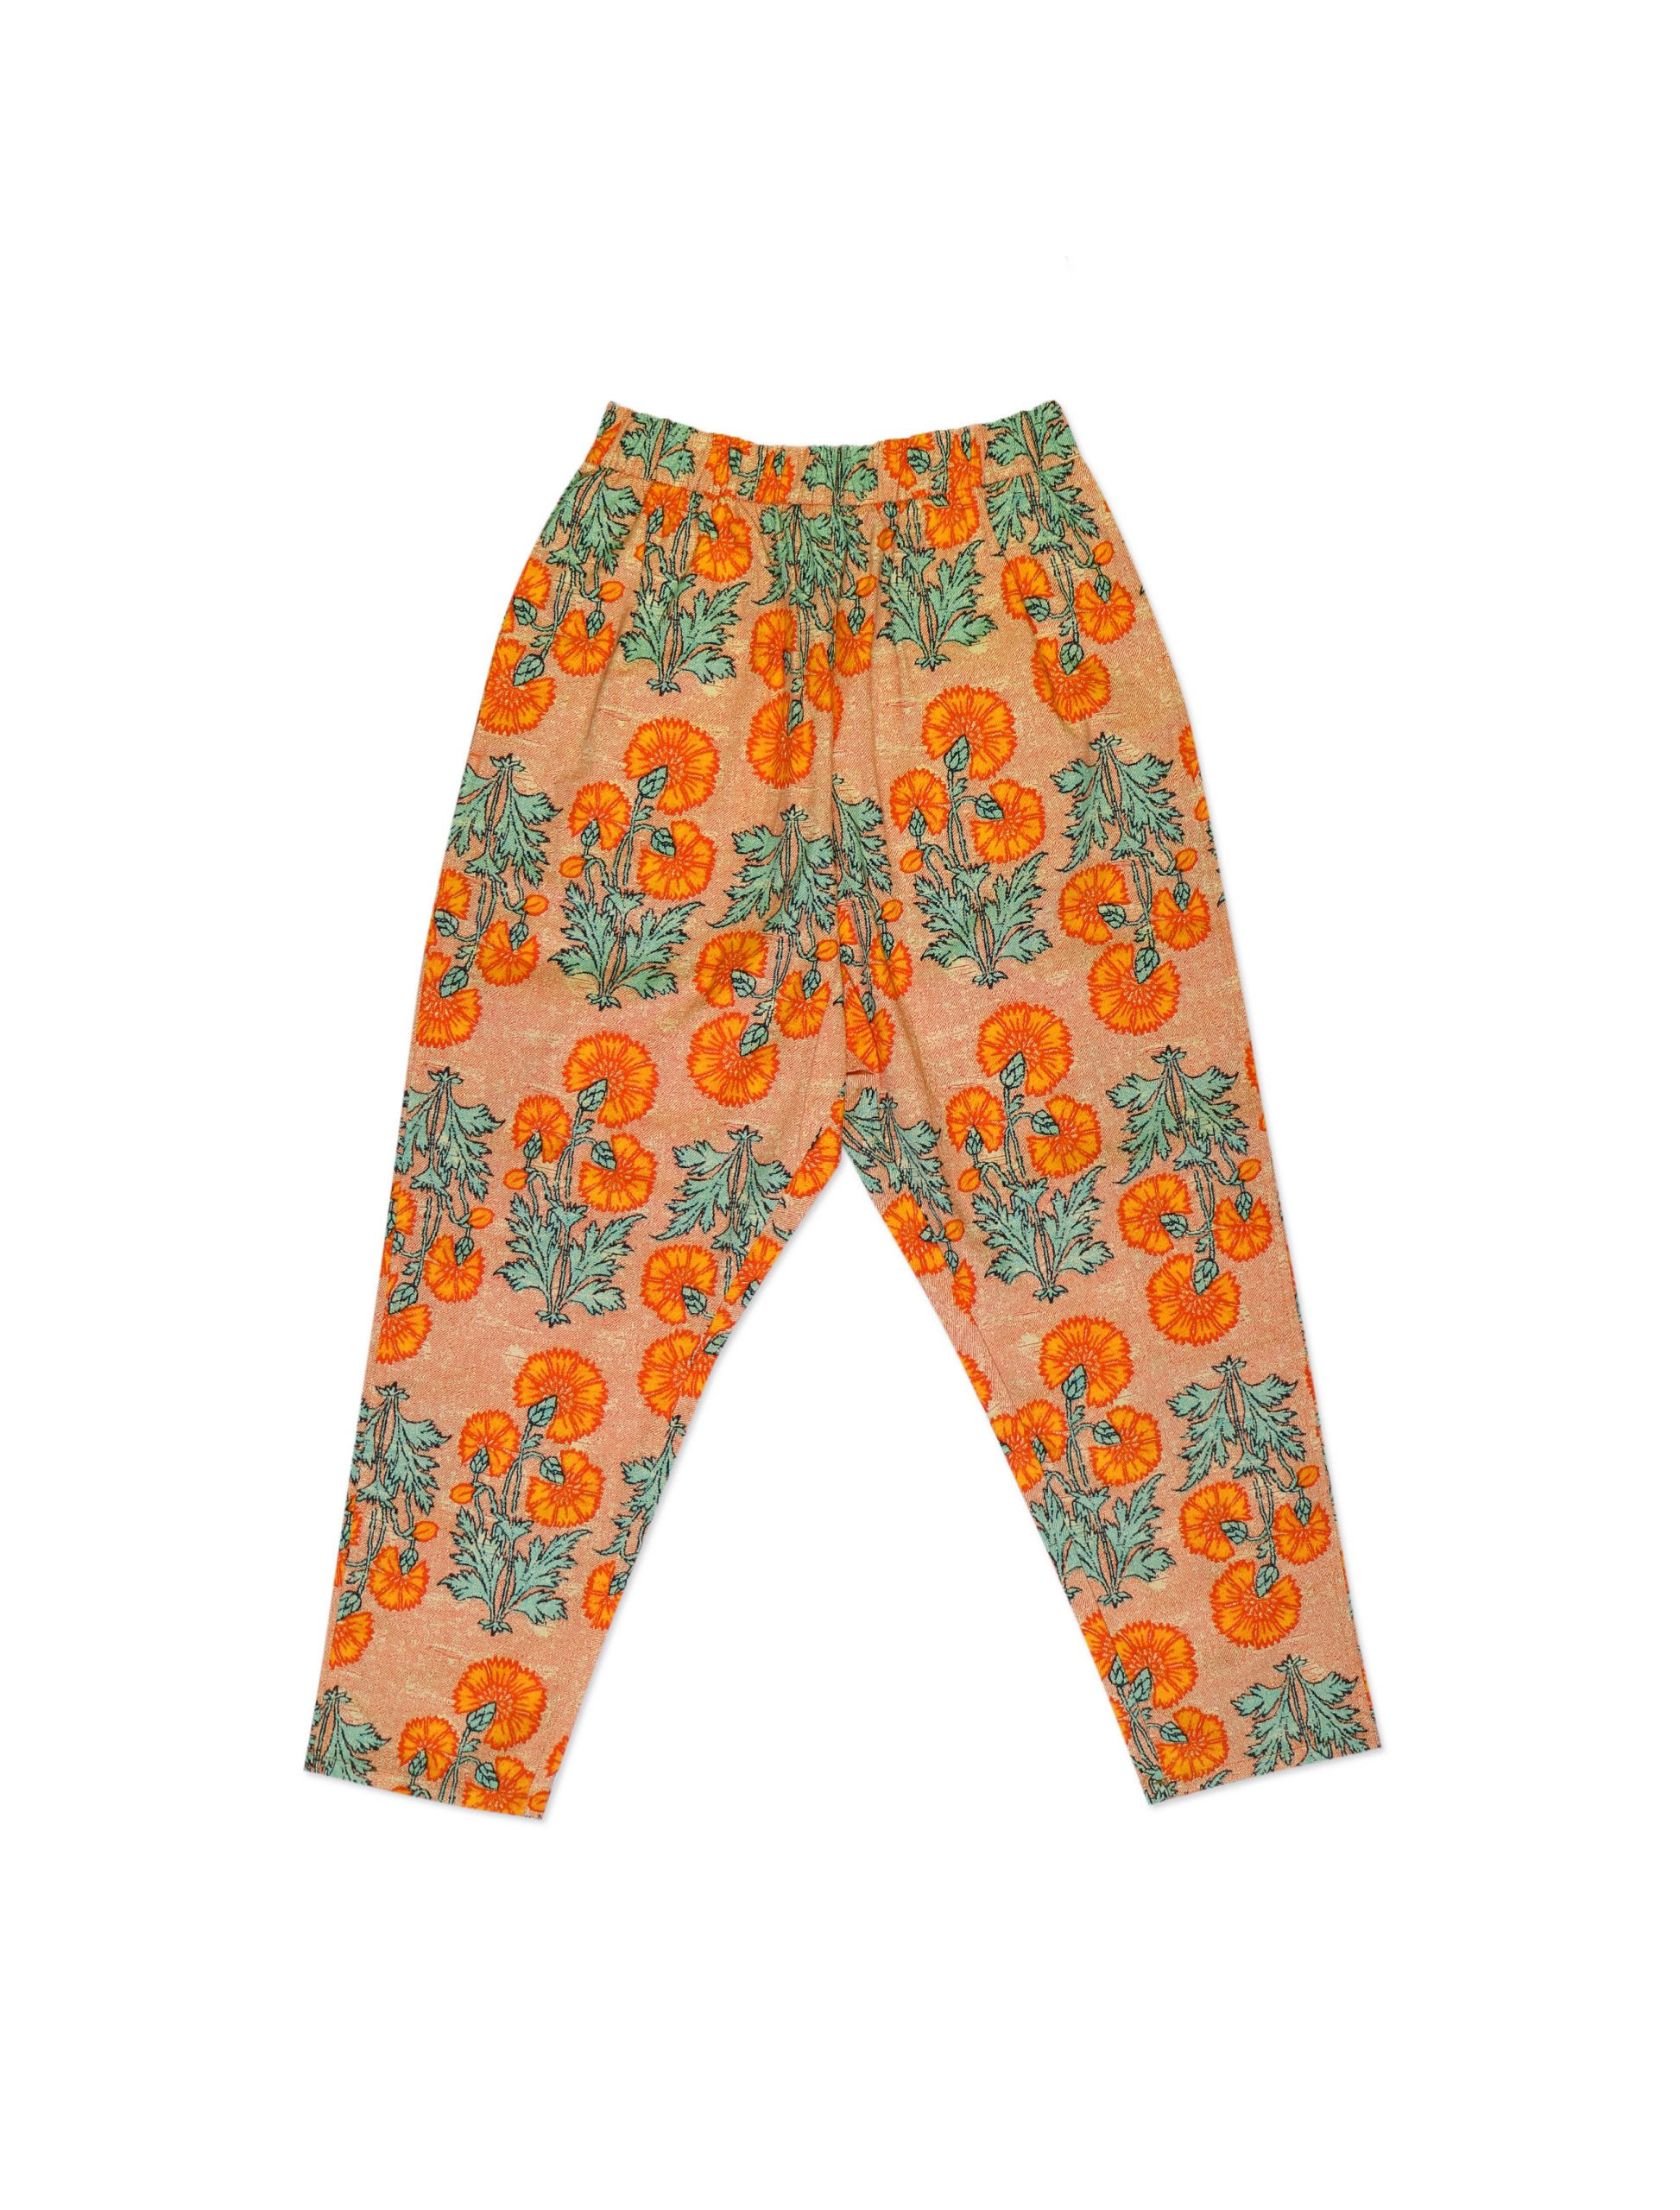 Easy Pant Vincent   Wooden Store